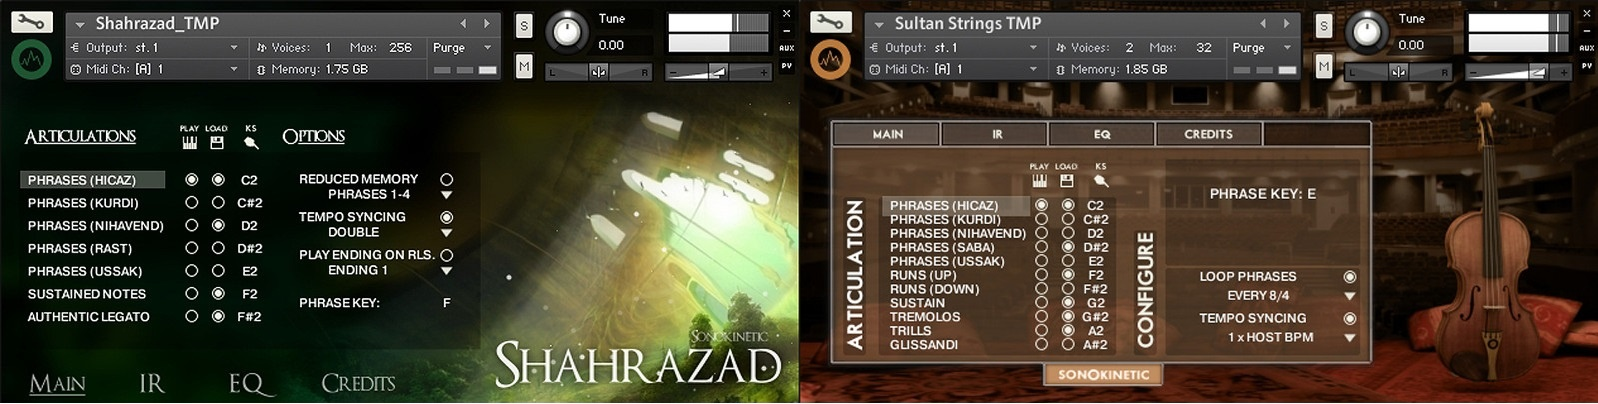 Test: Sample Librarys Sonokinetic Shahrazad und Sultan Strings